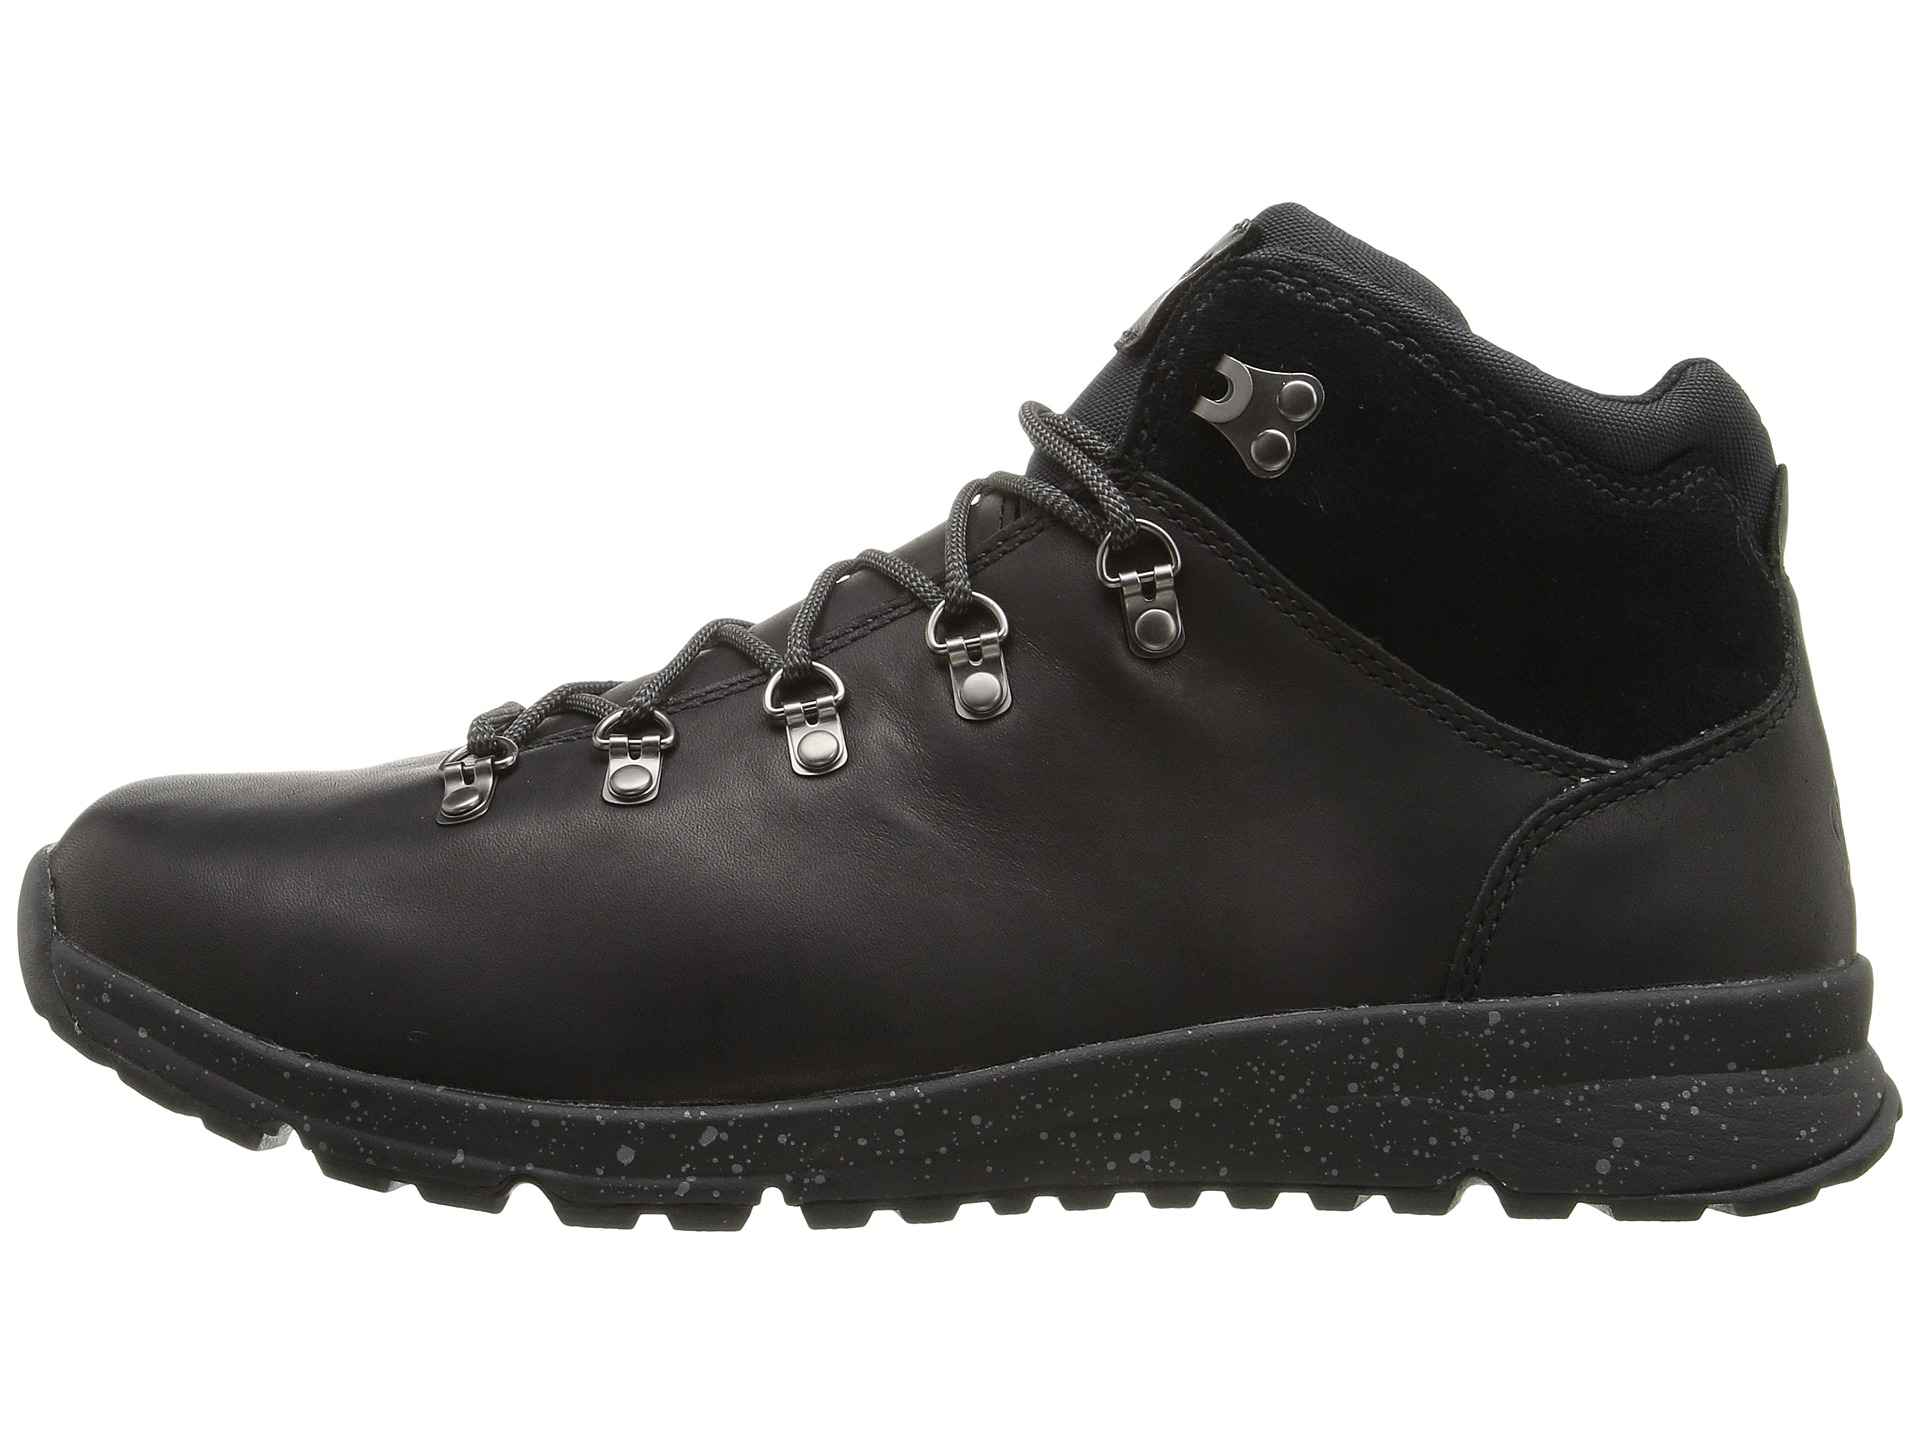 Danner Mountain 503 - Zappos.com Free Shipping BOTH Ways